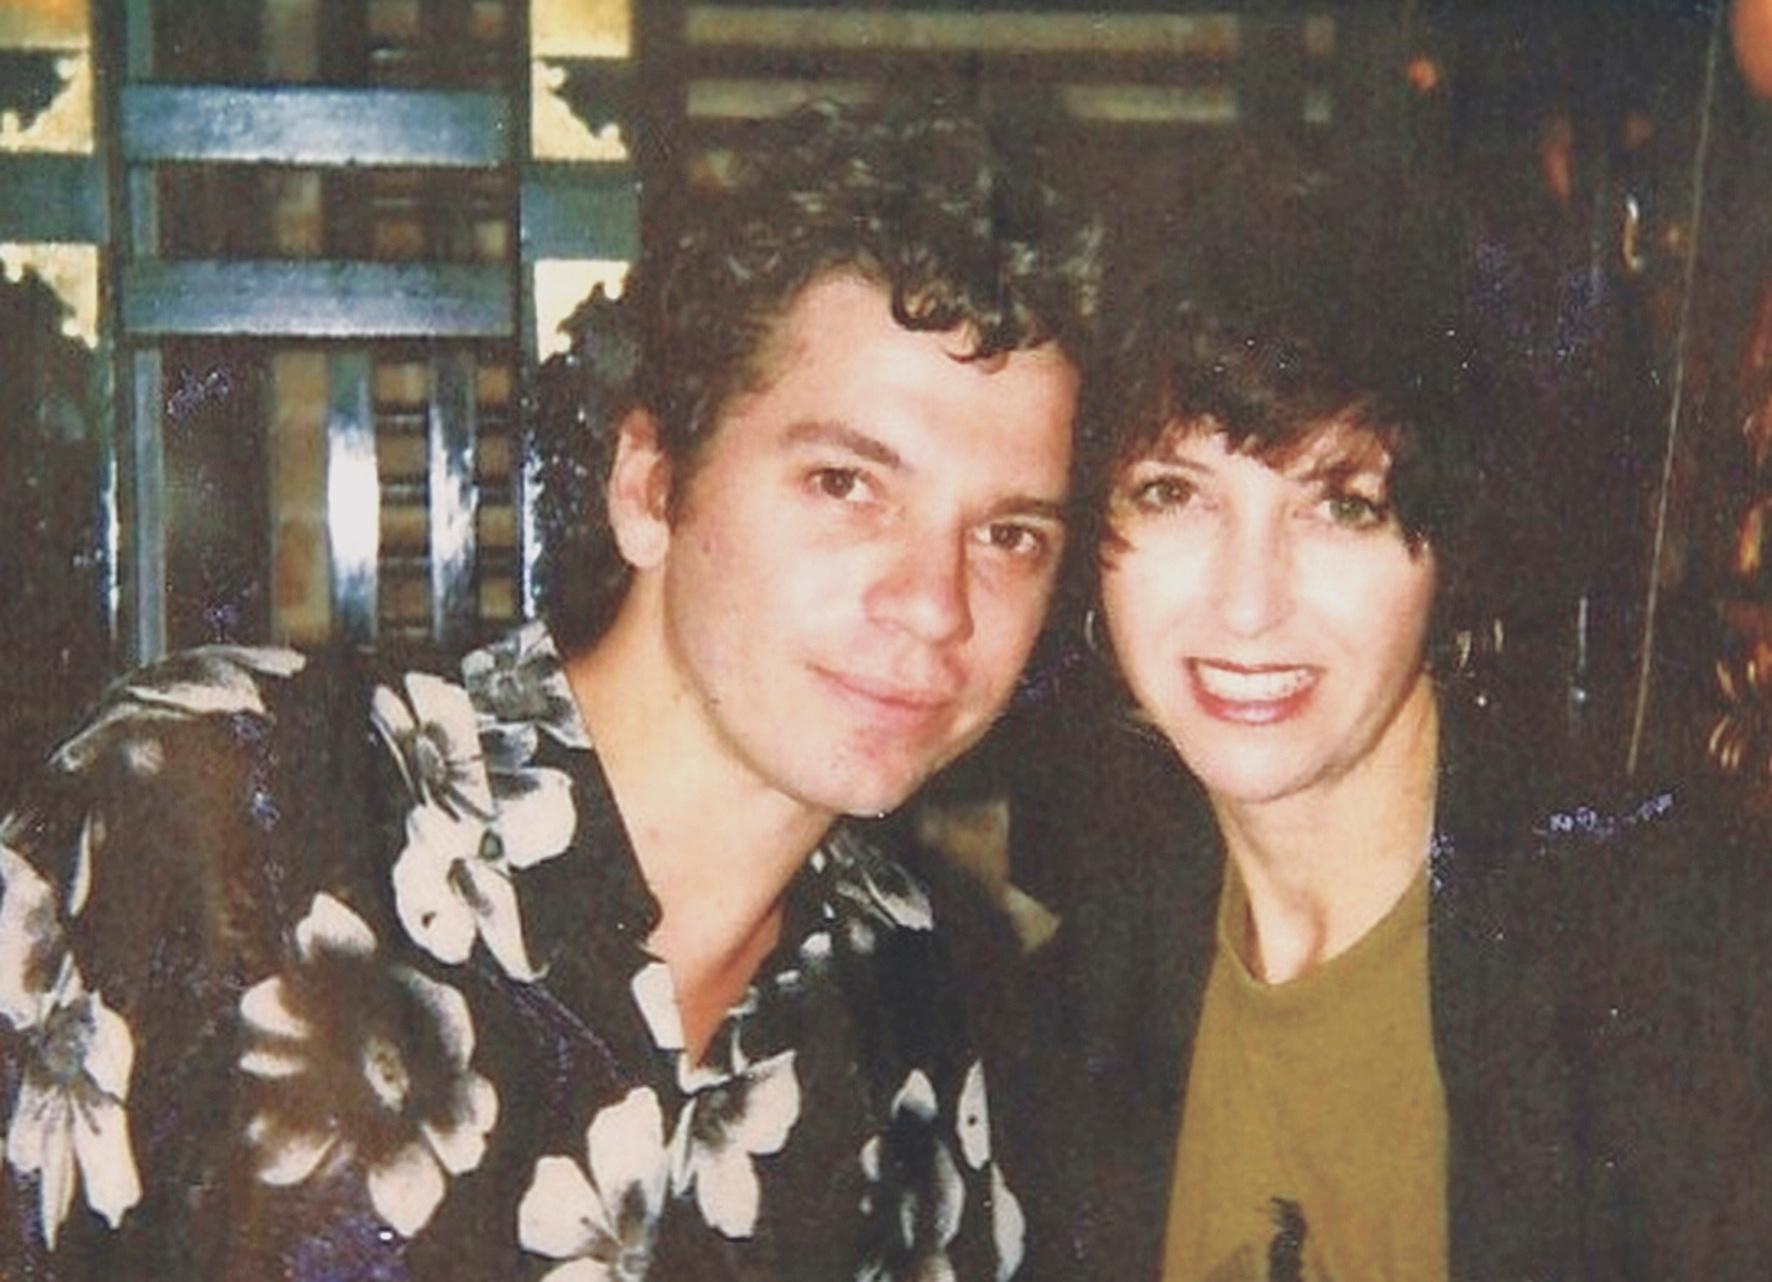 'His personality changed': Michael Hutchence's sister on his traumatic brain injury